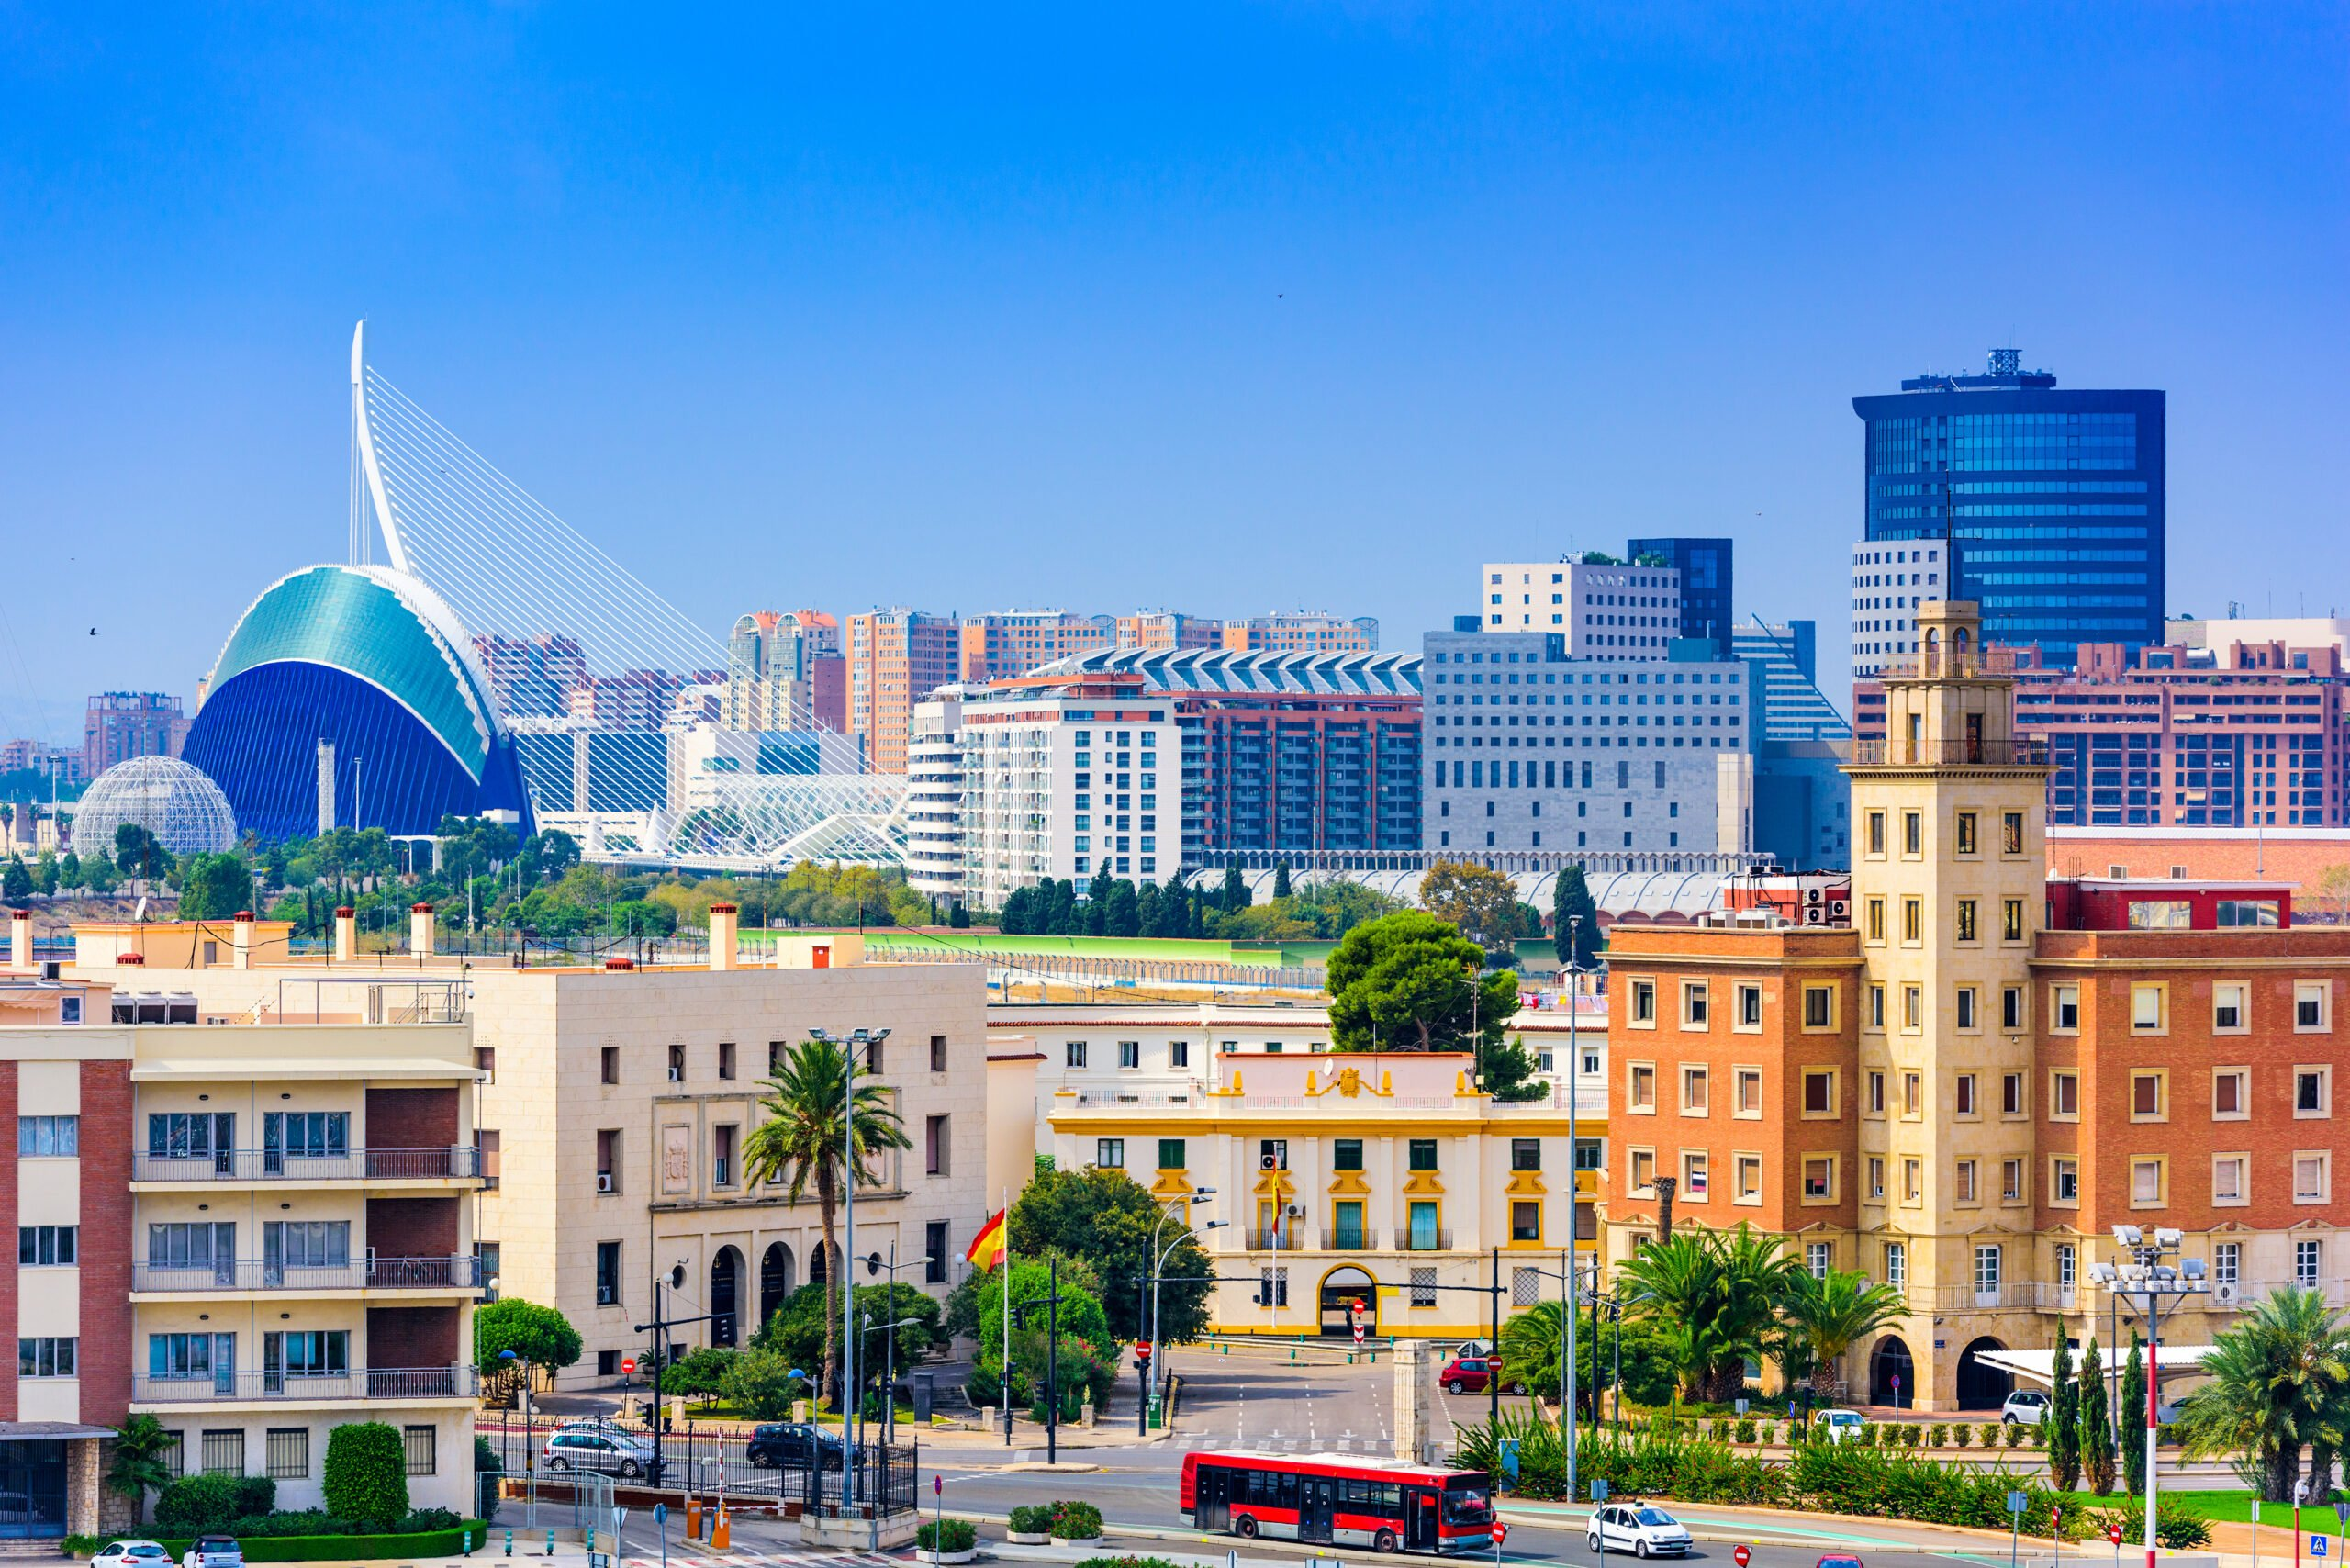 Explore Valencia's Iconic City Of Arts And Sciences In Our City Of Arts & Sciences Tour With Rooftop Wine Tasting And Tapas